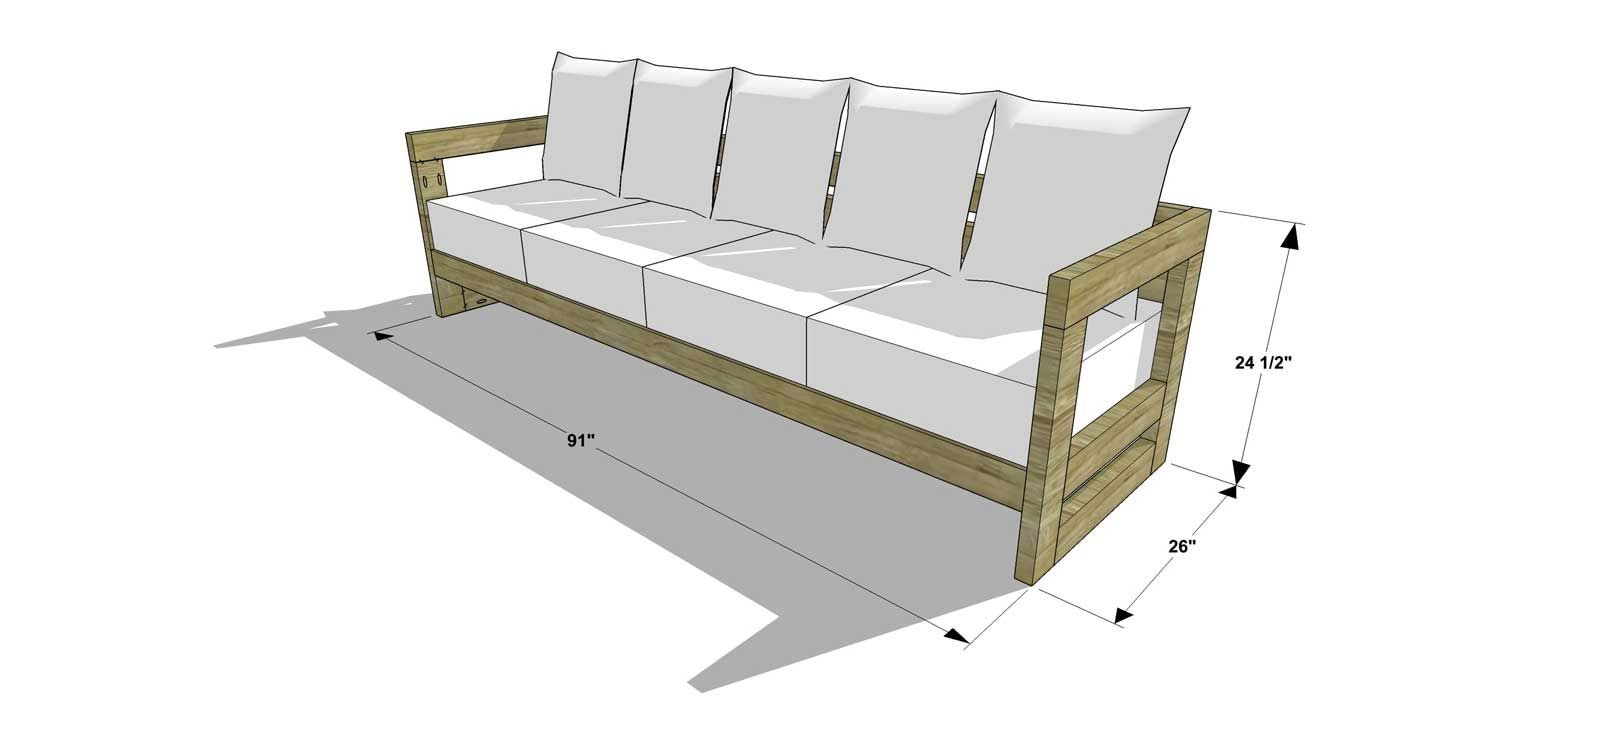 The design confidential diy furniture plans how to build for Patio furniture designs plans